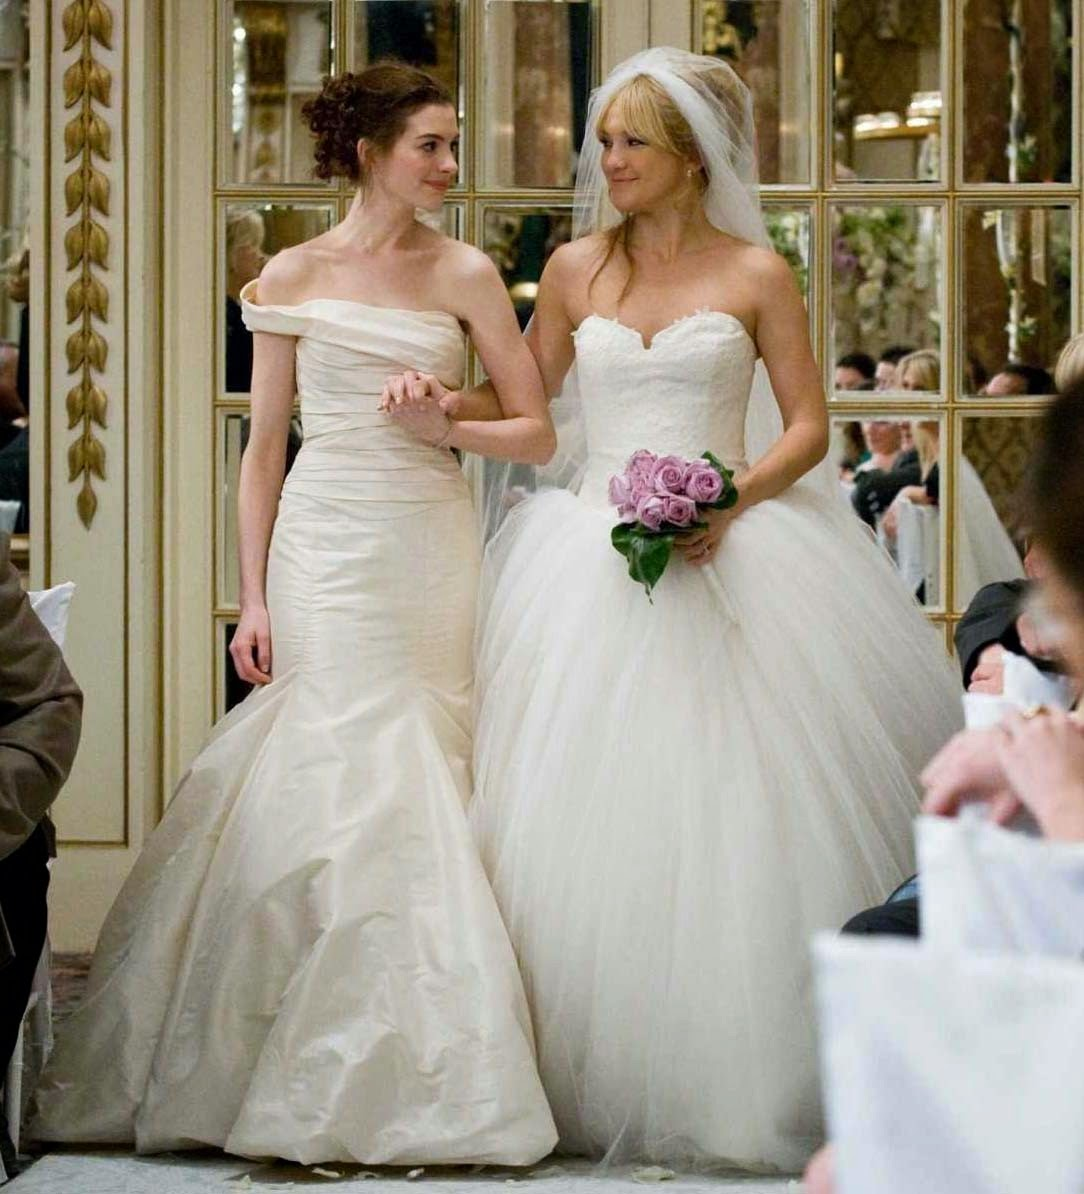 ♛ A Girl Like You ♛: Favourite Wedding Dress From Movies